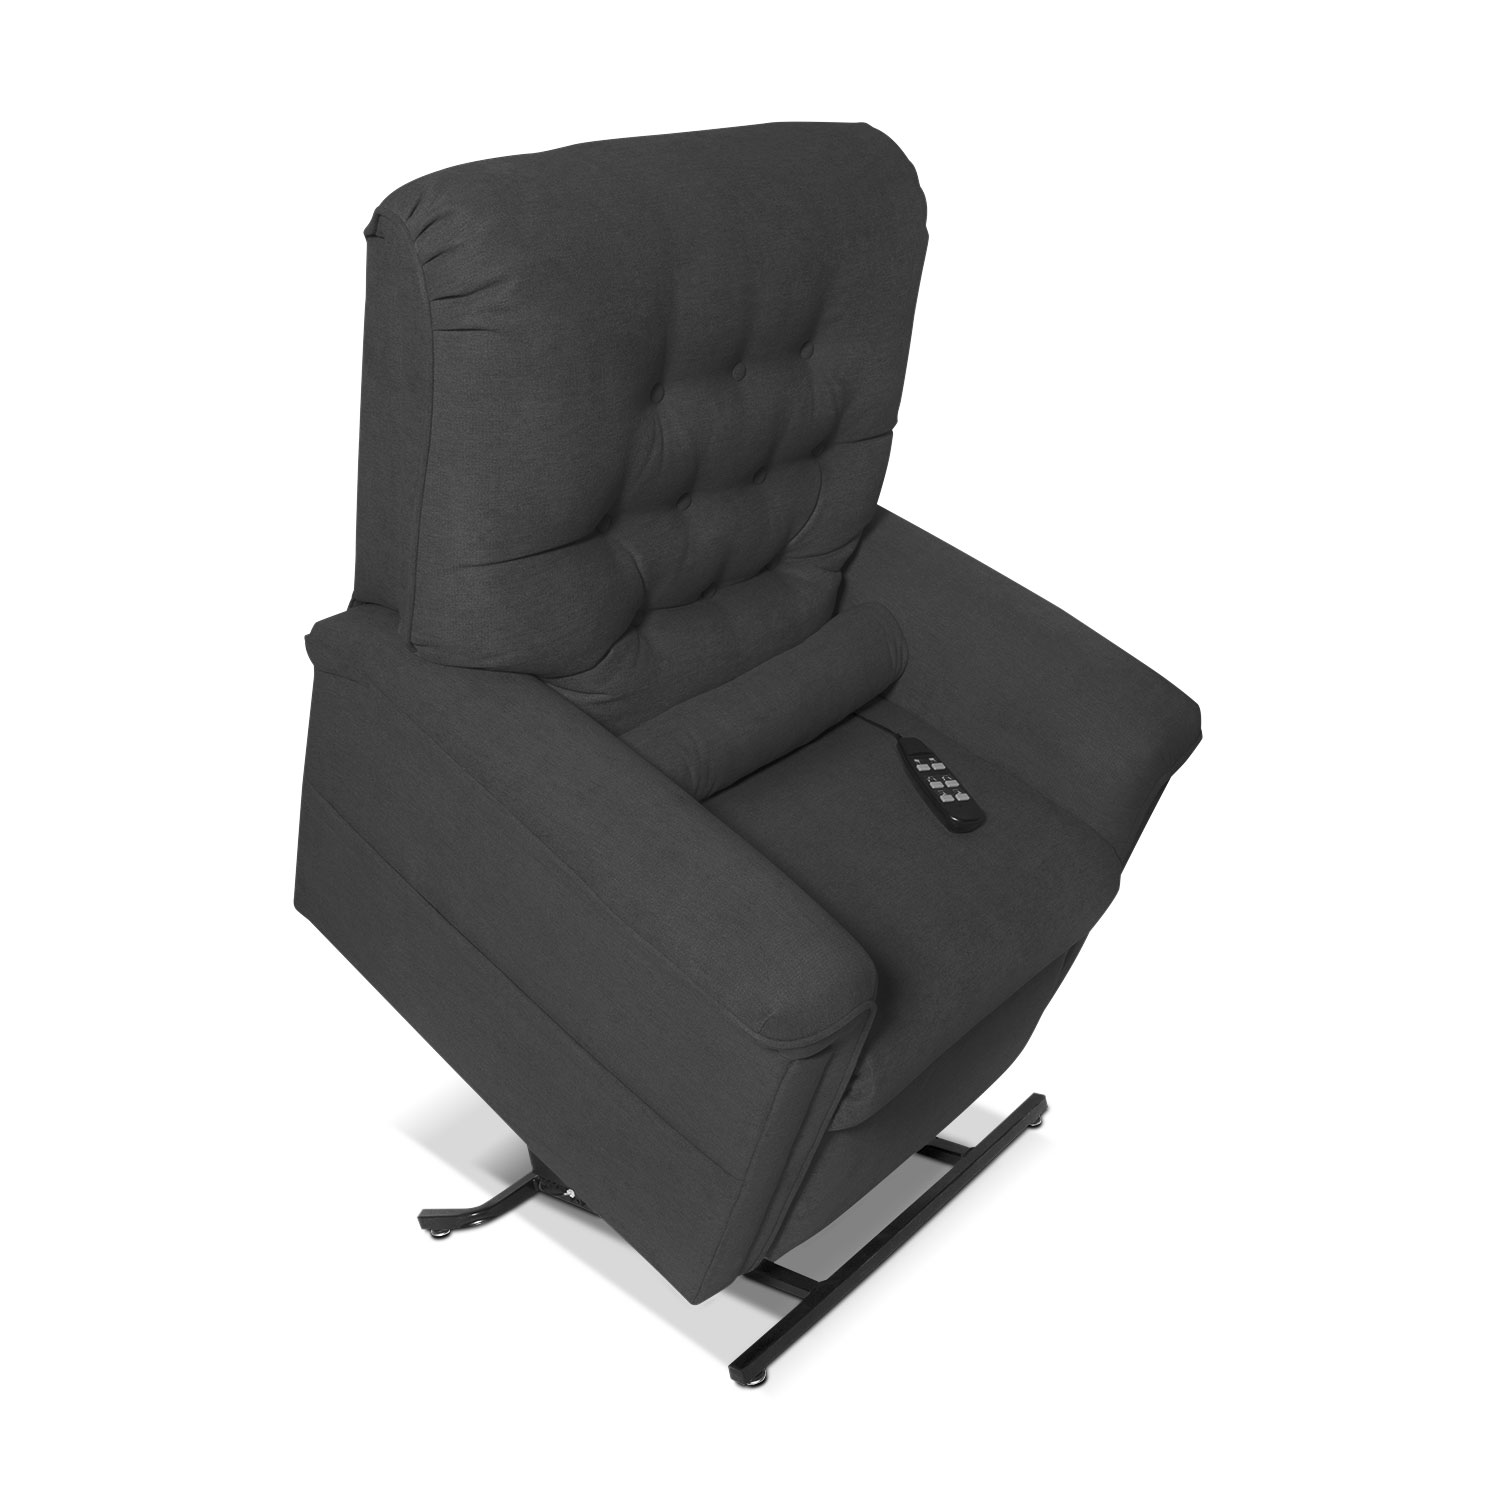 Living Room Furniture - Marcy Lift Chair - Gray